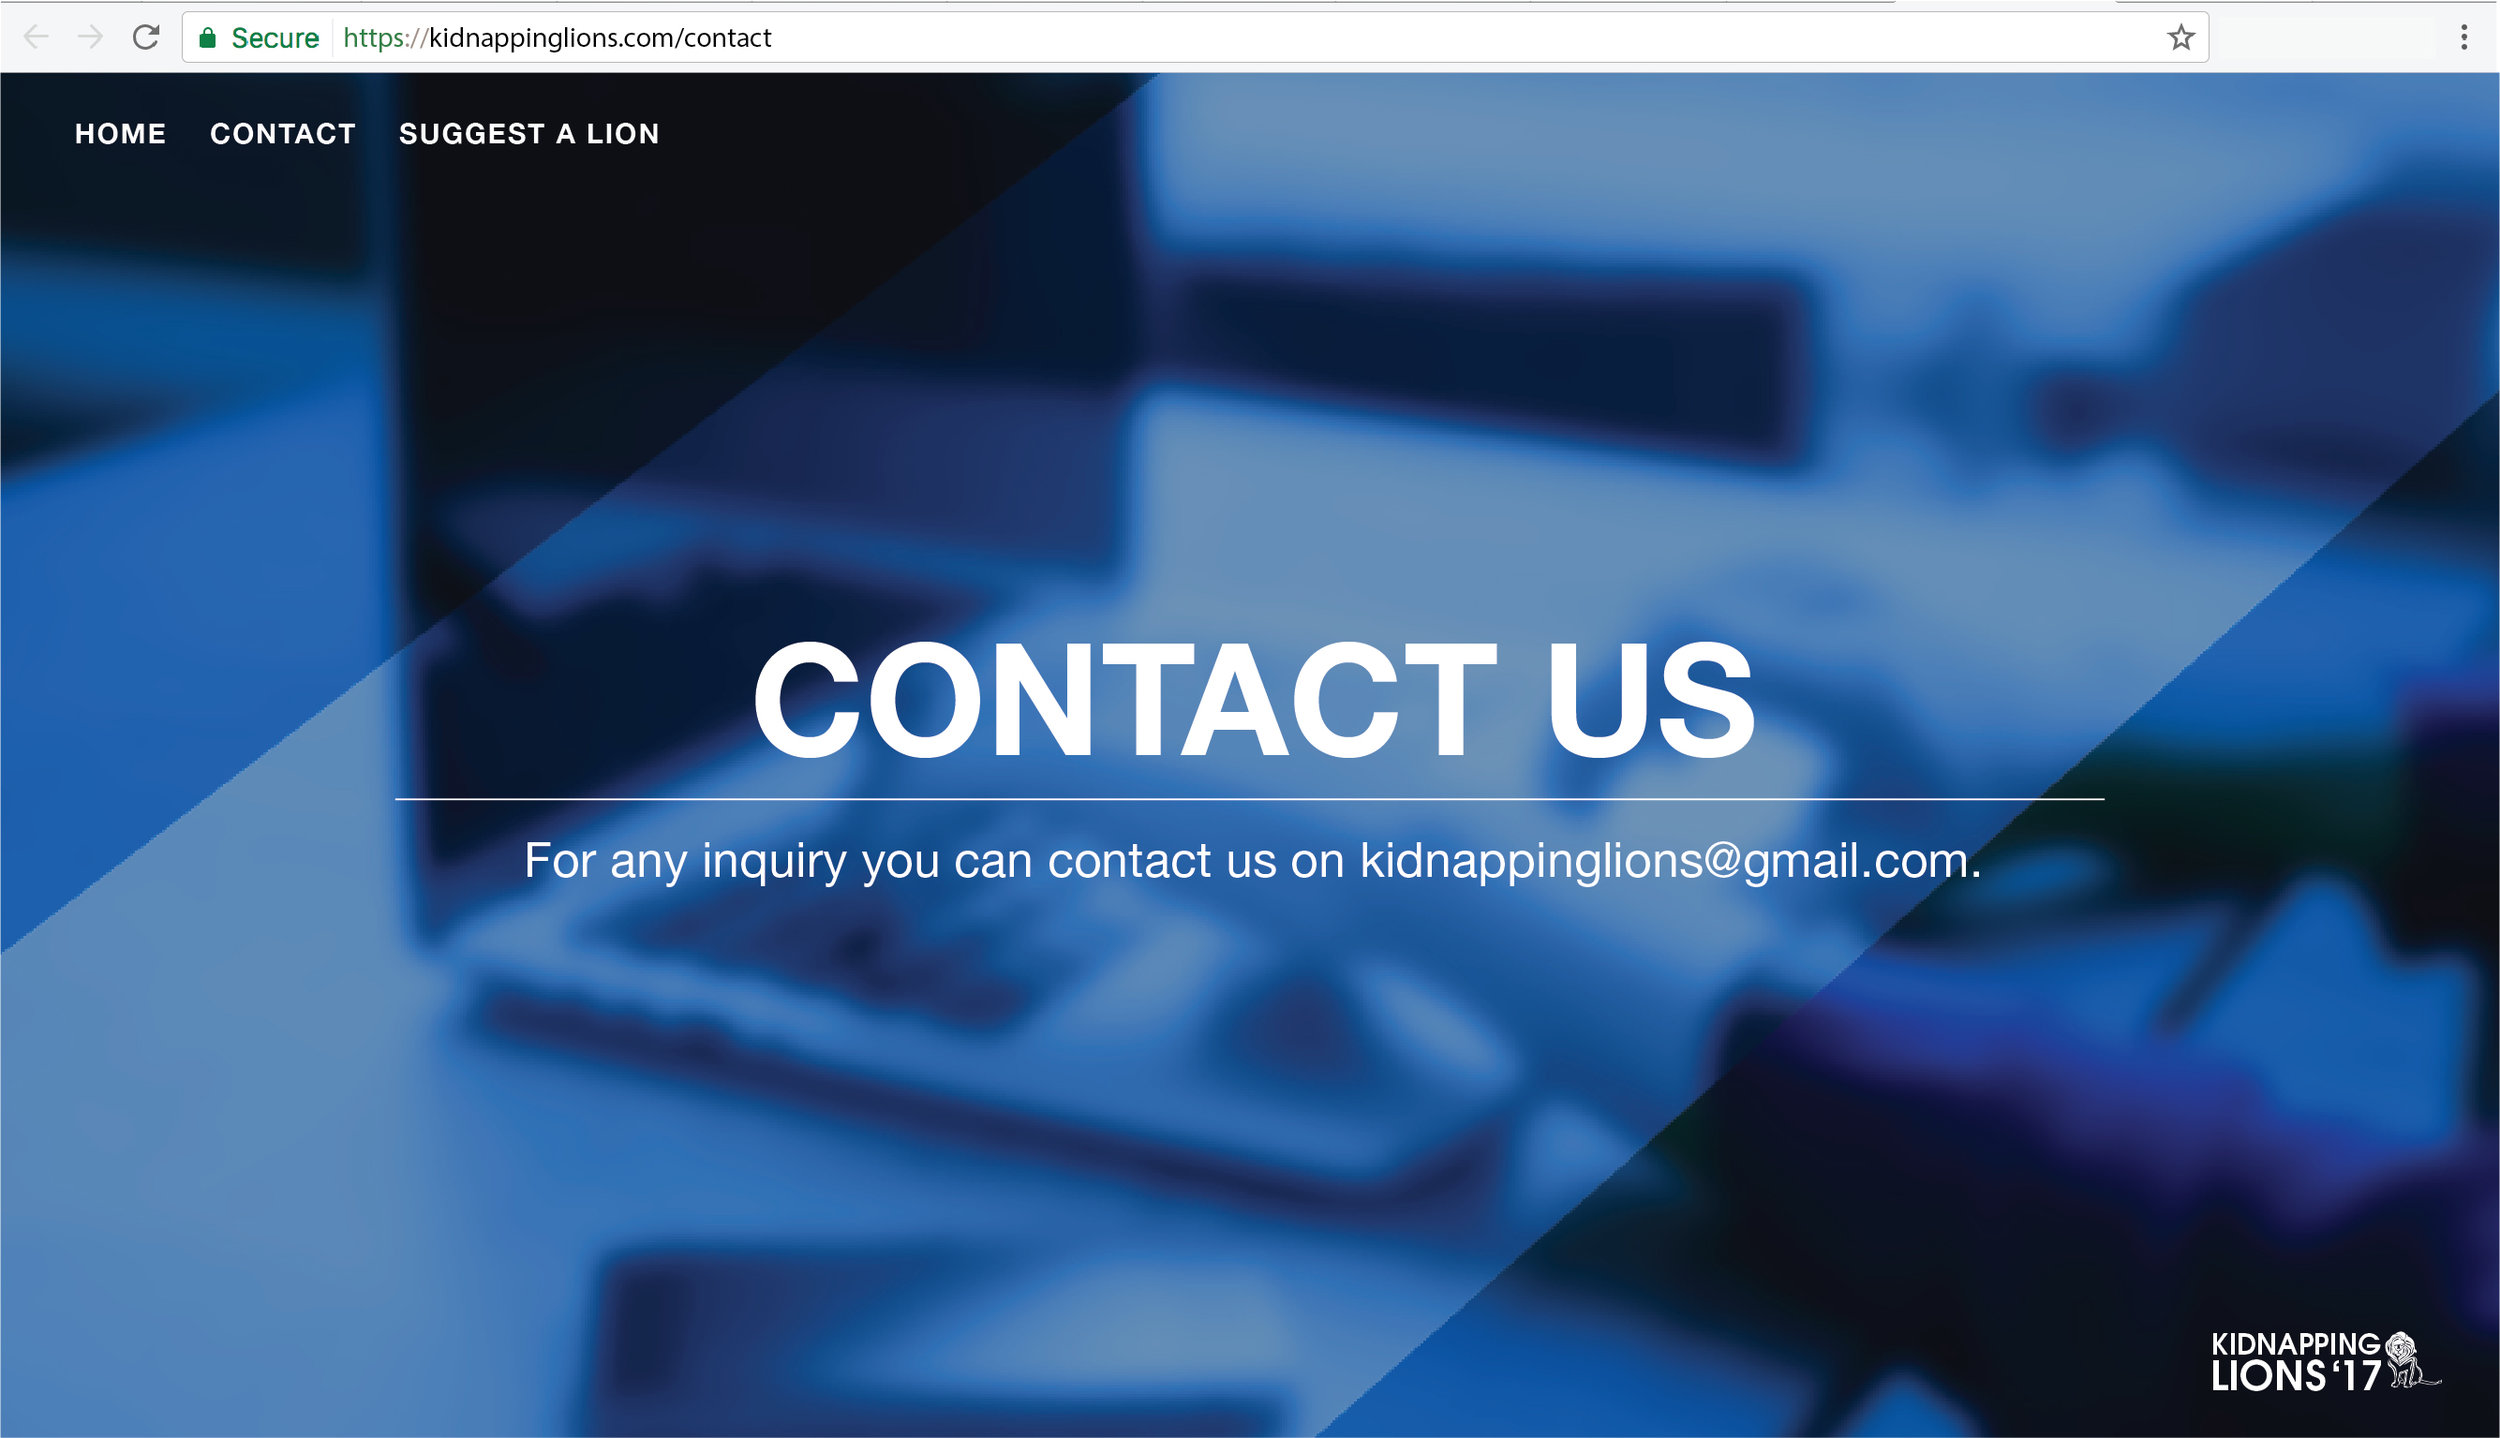 kidnappinglions_microsite_new-04.jpg